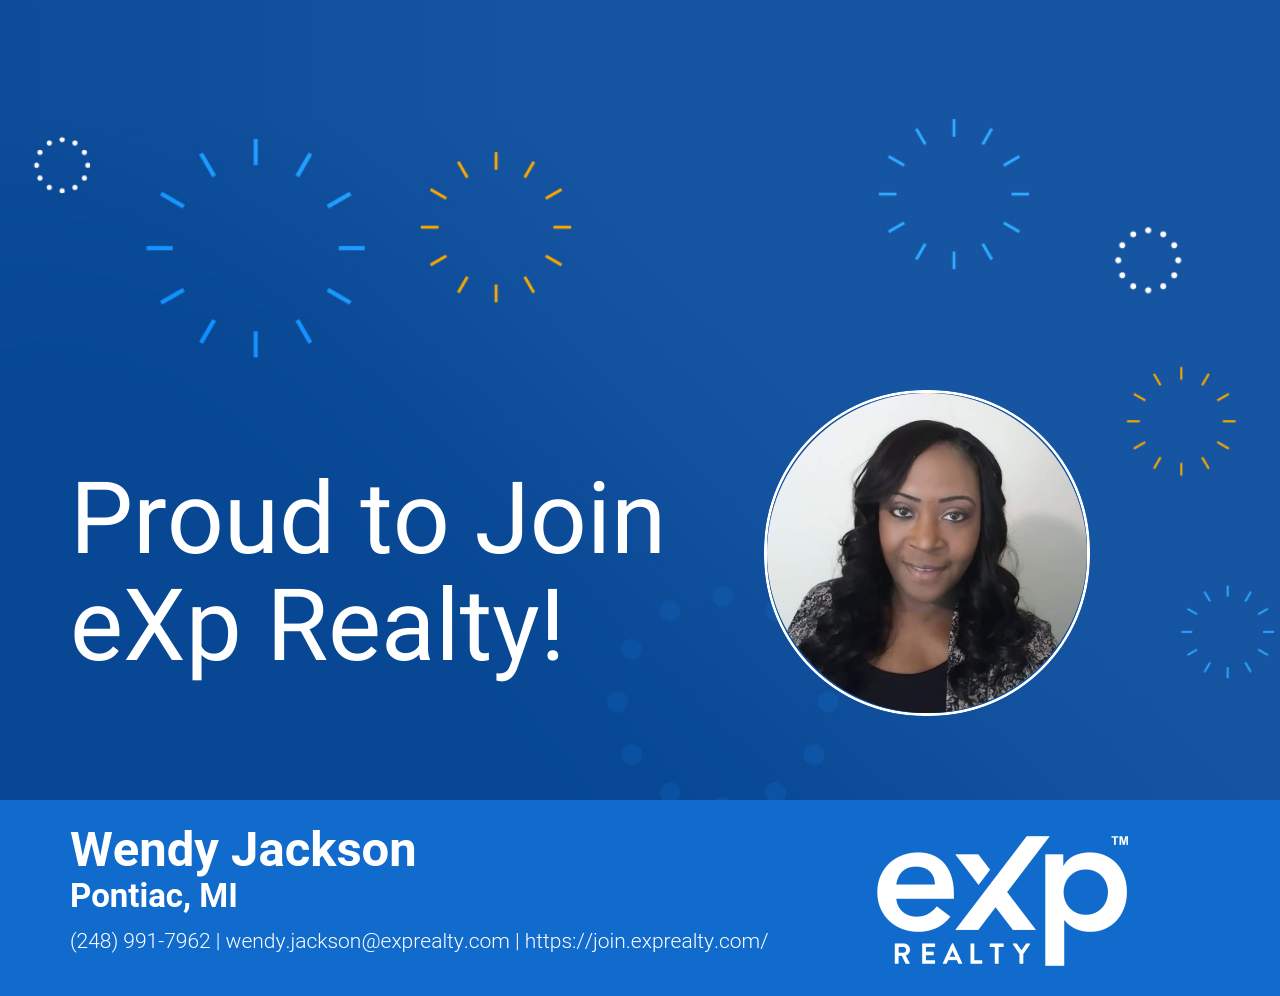 Wendy Jackson Joined eXp Realty!